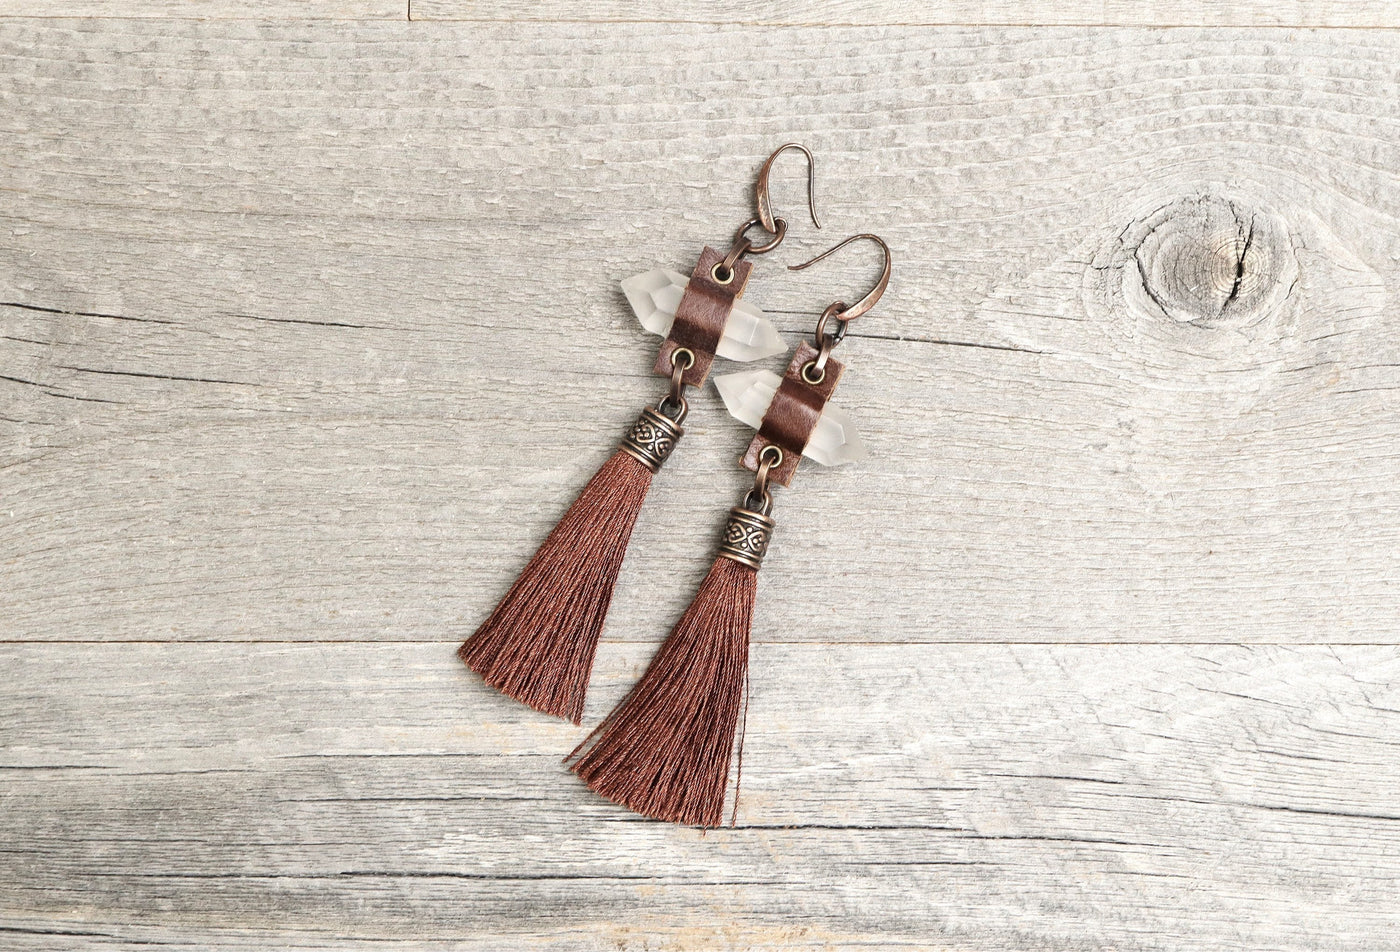 Quartz Leather Tassel Long Earrings, Crystal Spike Boho Gypsy Earthy Hippie Brown Unique Gemstone Statement Bohemian Rustic Handmade Jewelry